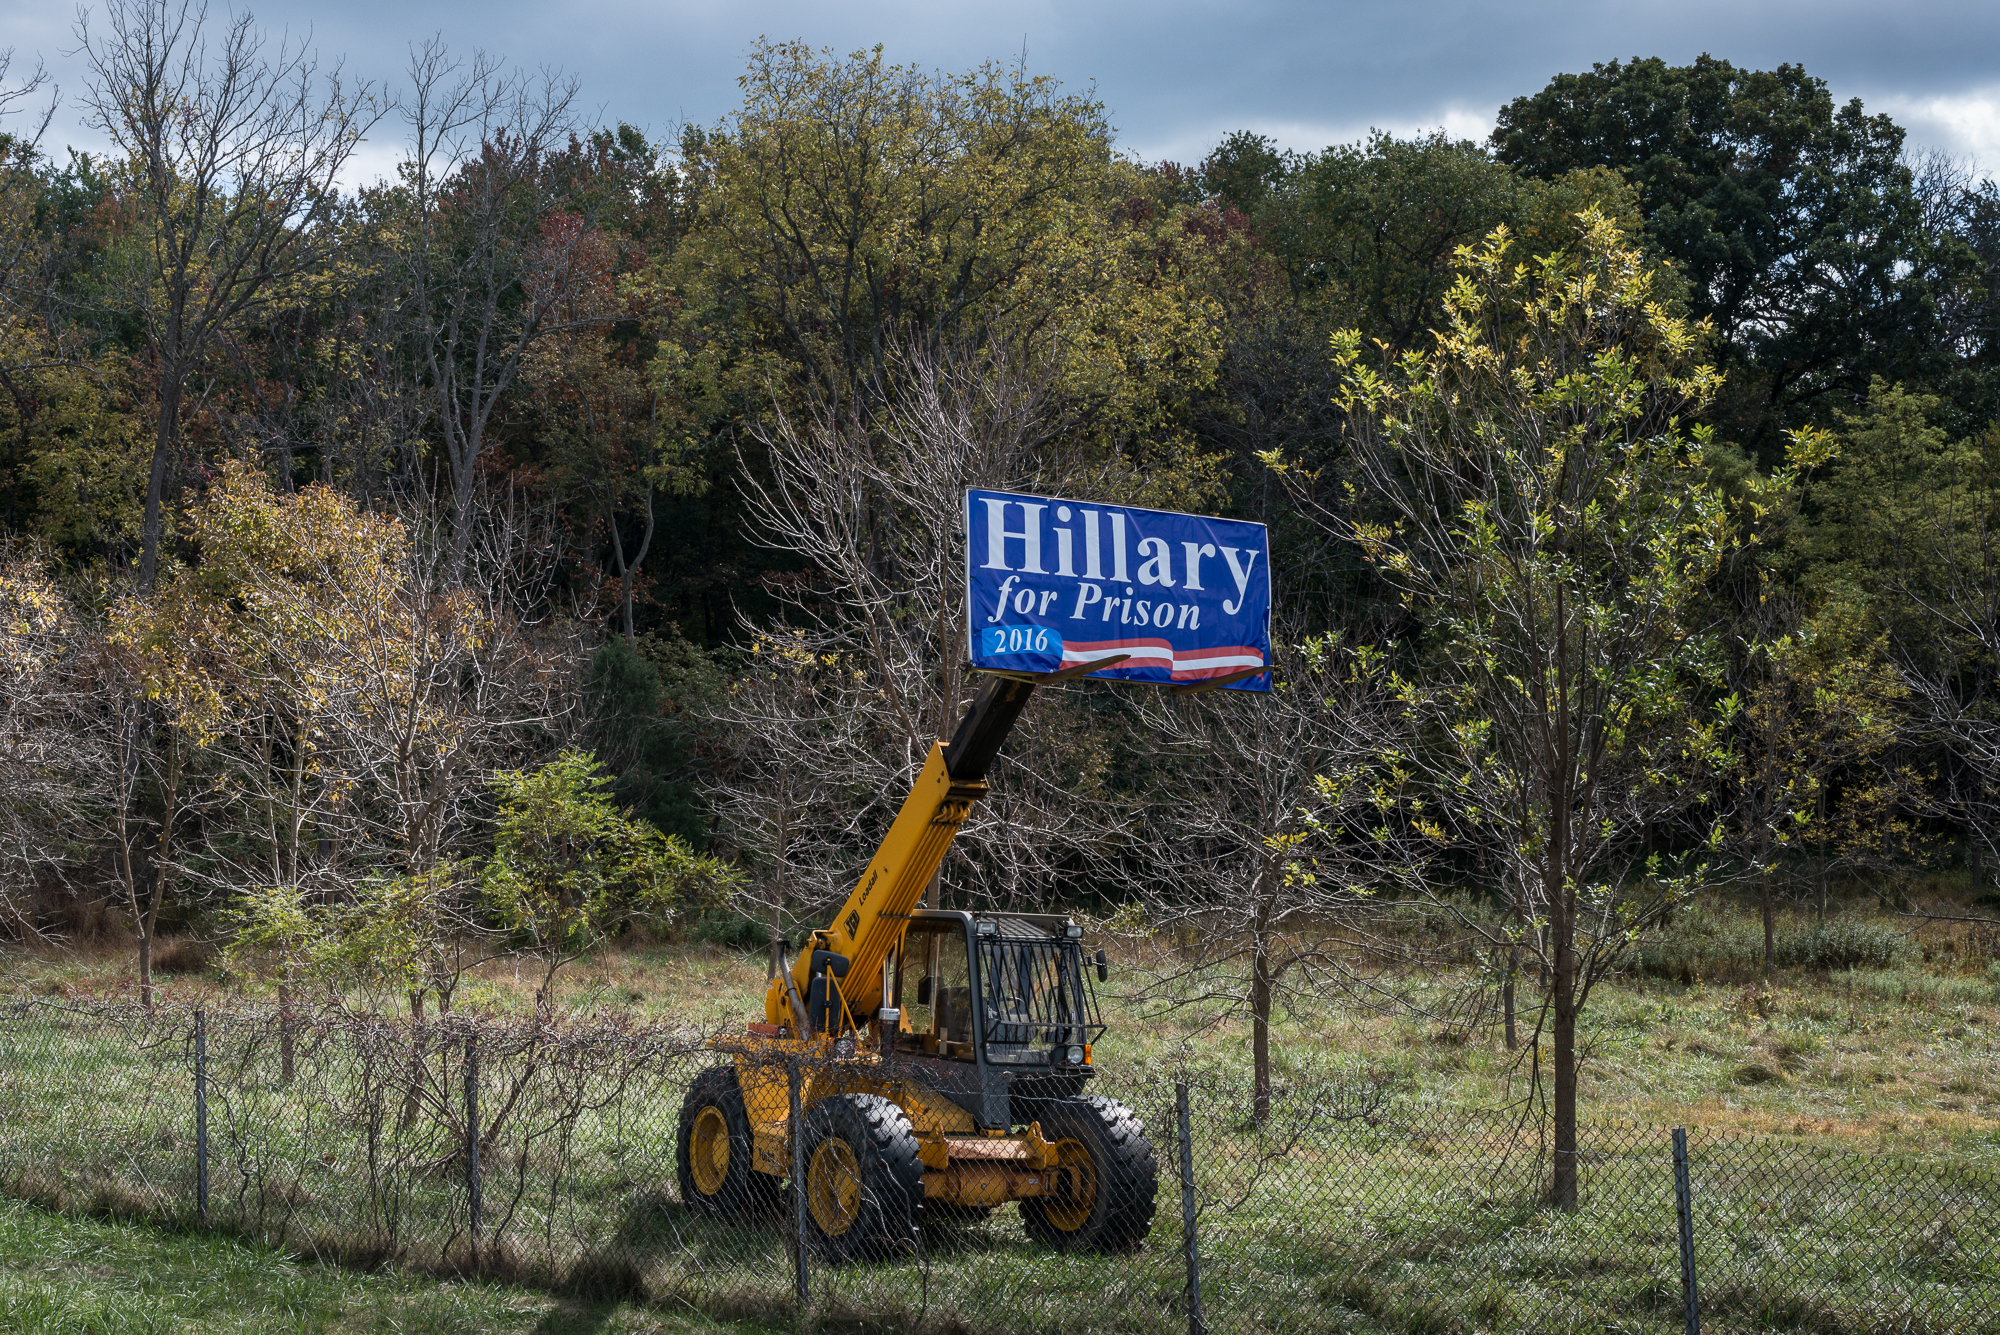 HIllary for Prison, Ellicott City, Maryland, 2015